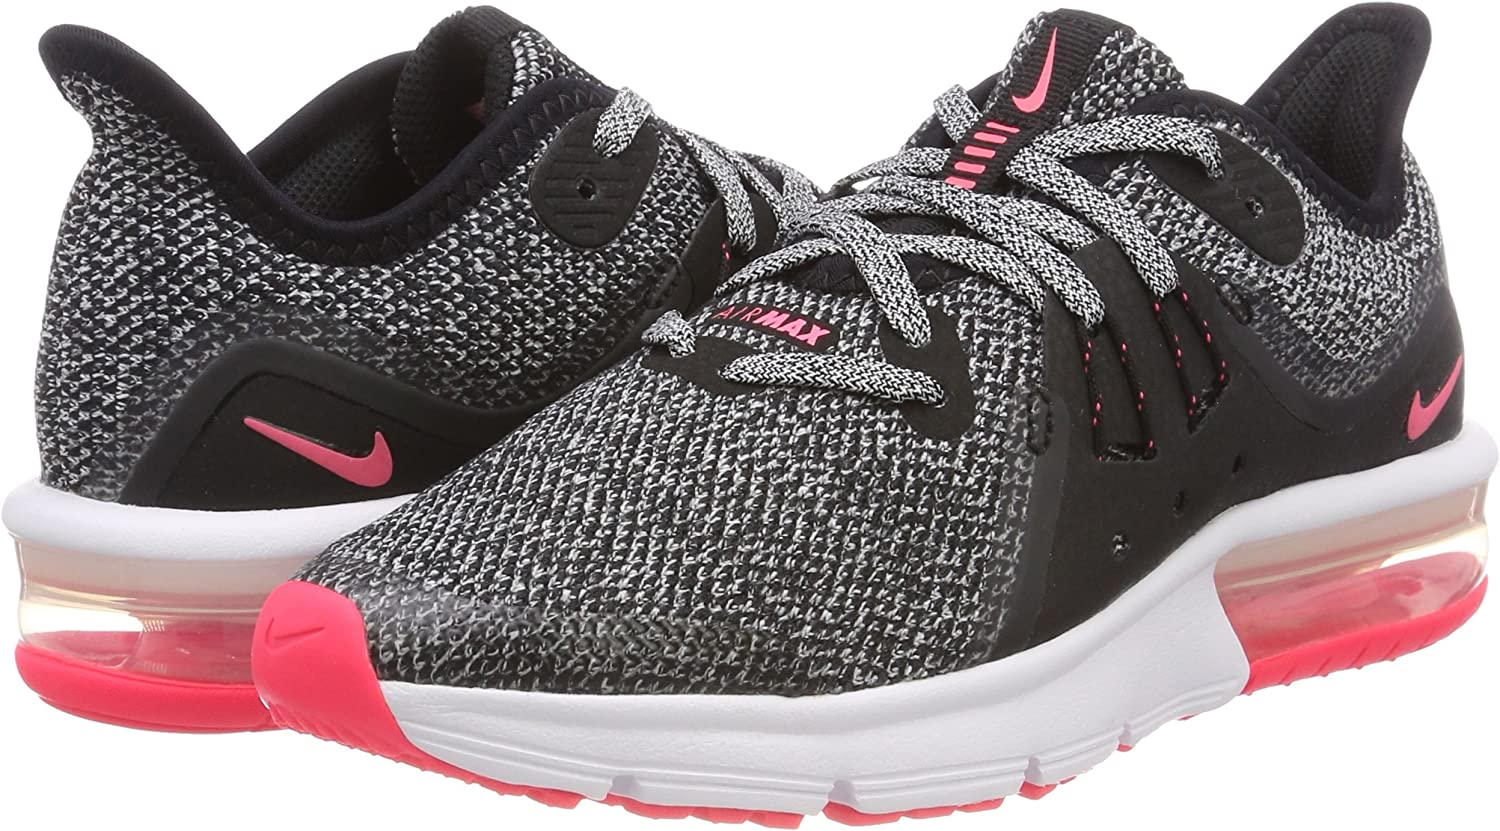 Nike Air Max Chaussures de course Sequent 3 GG pour fille